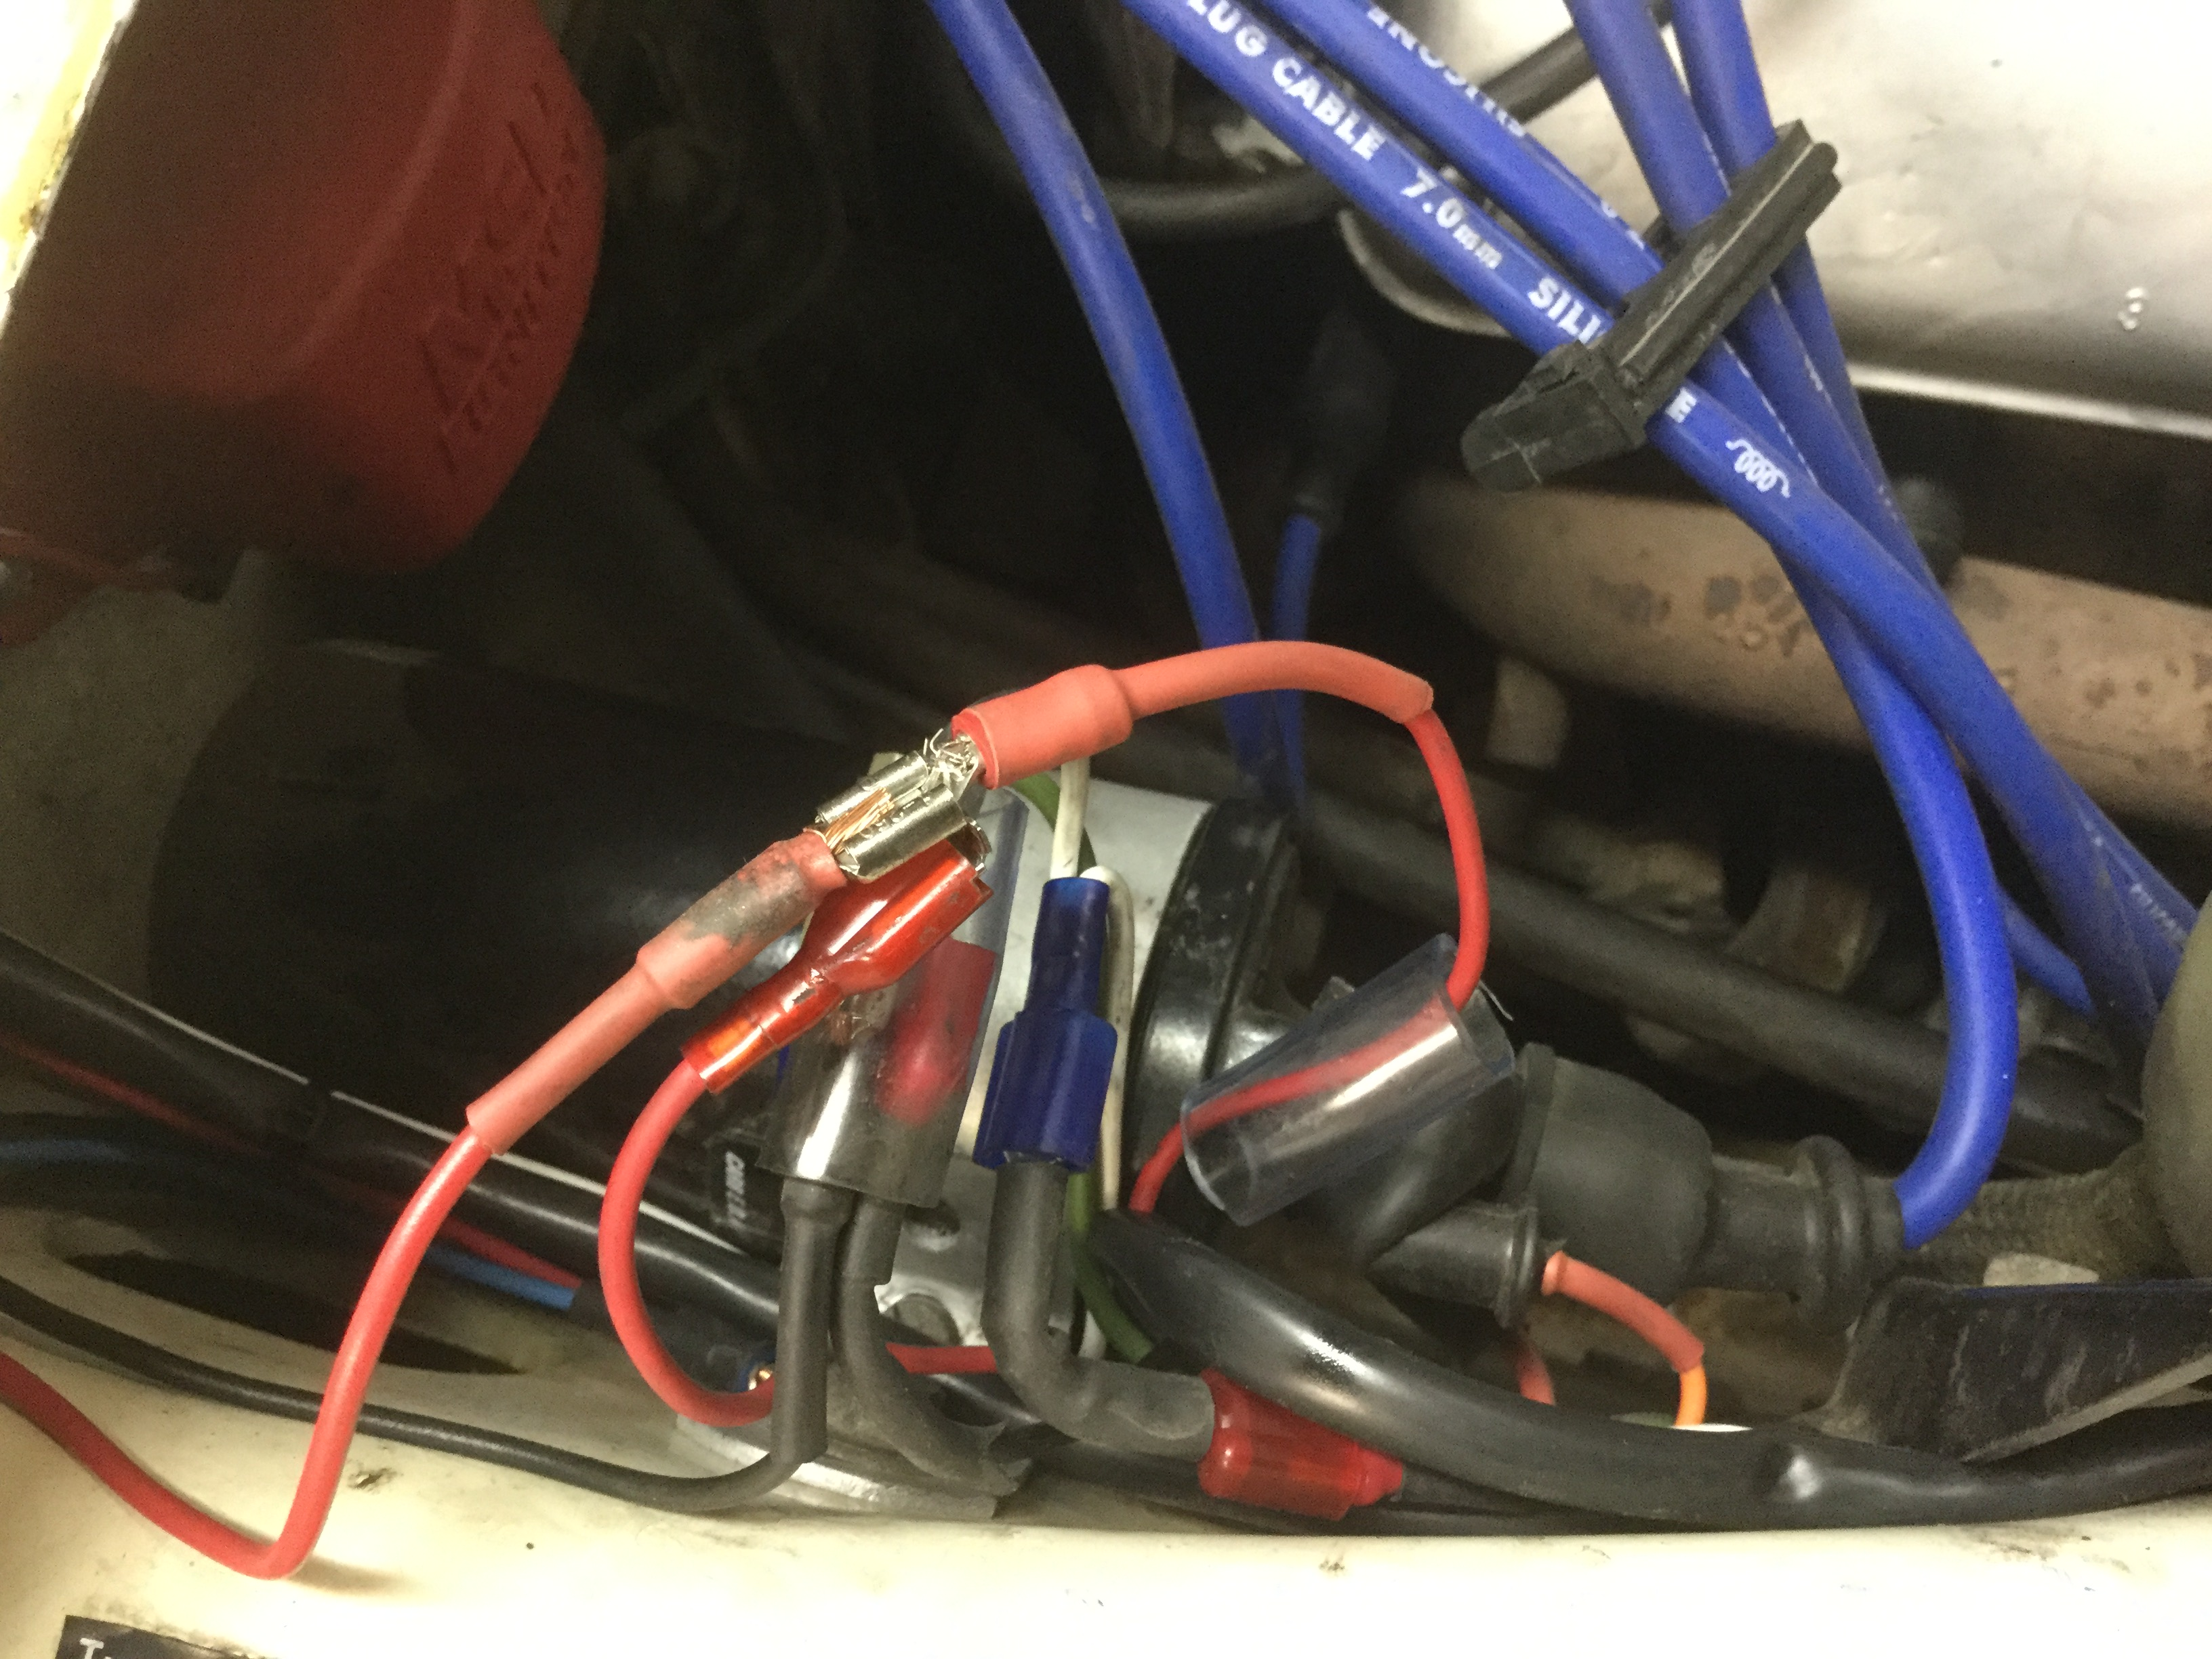 123ignition Set Up Installation Information Collaborative Page 2 Bmw 2002 Wiring Loom For The Cdi Ignition Comes From Right With Red And White Wires 123 Left Black Blue